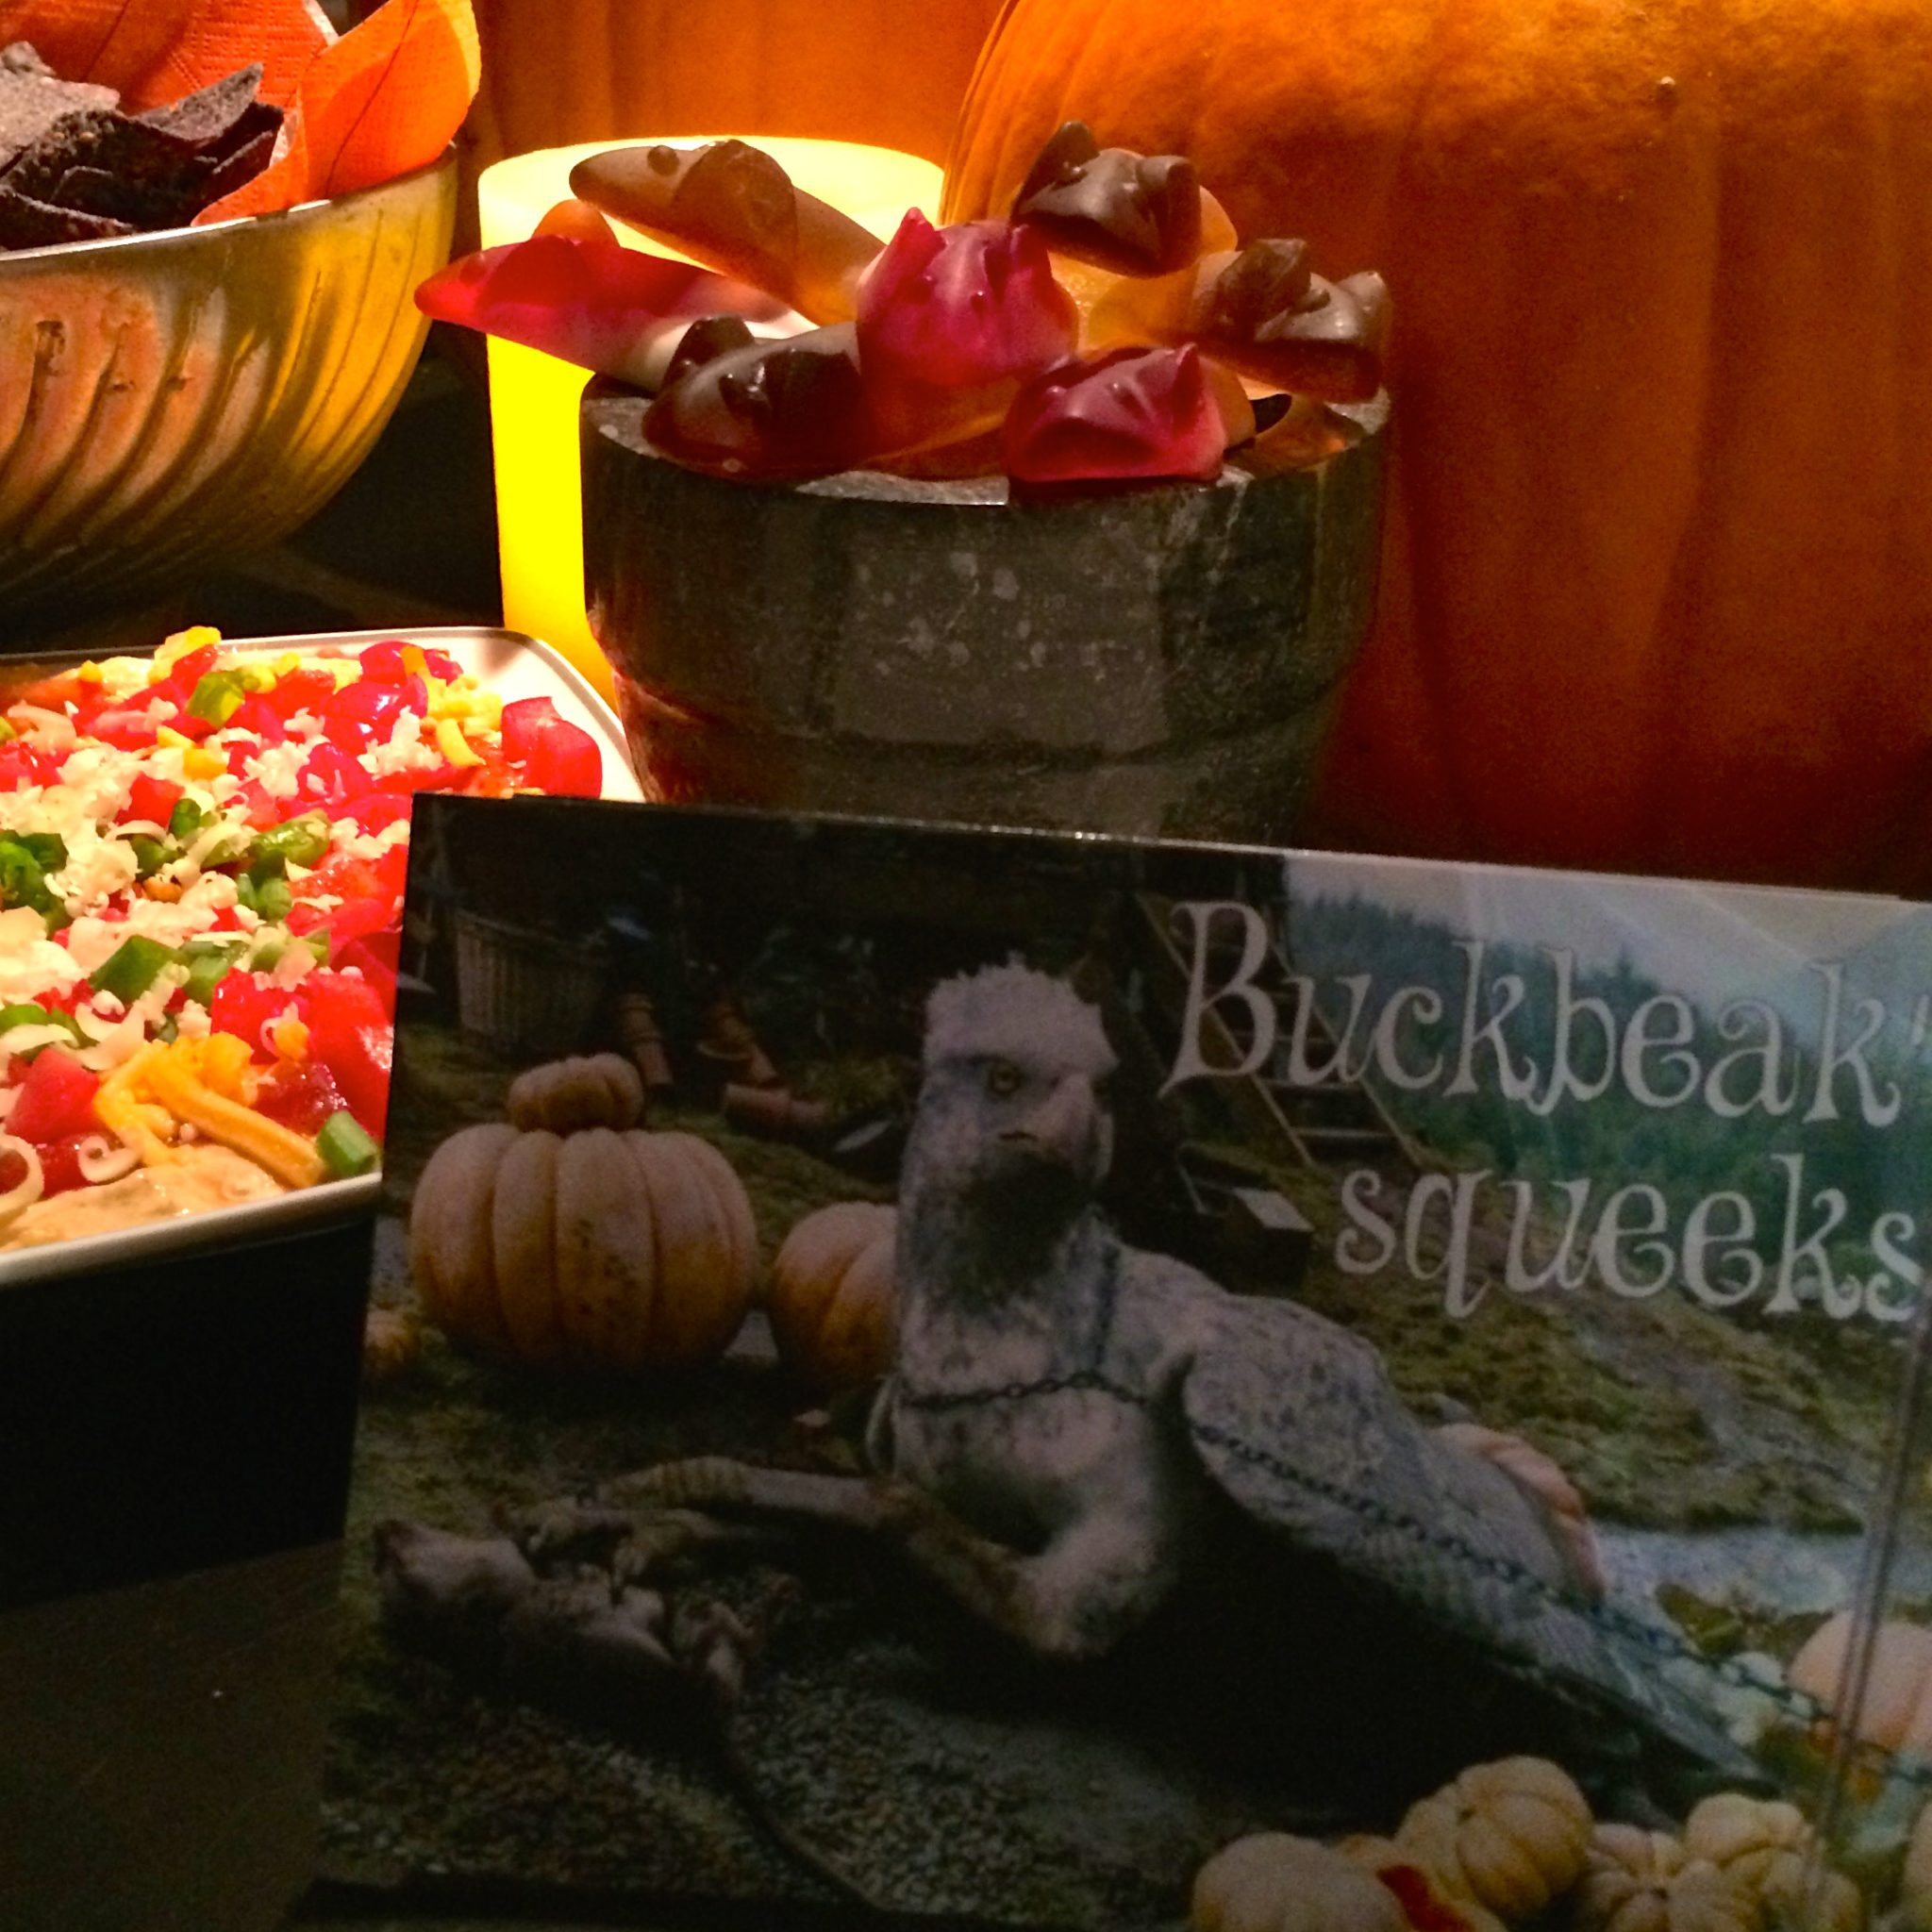 A bowl of Buckbeak's squeeks.